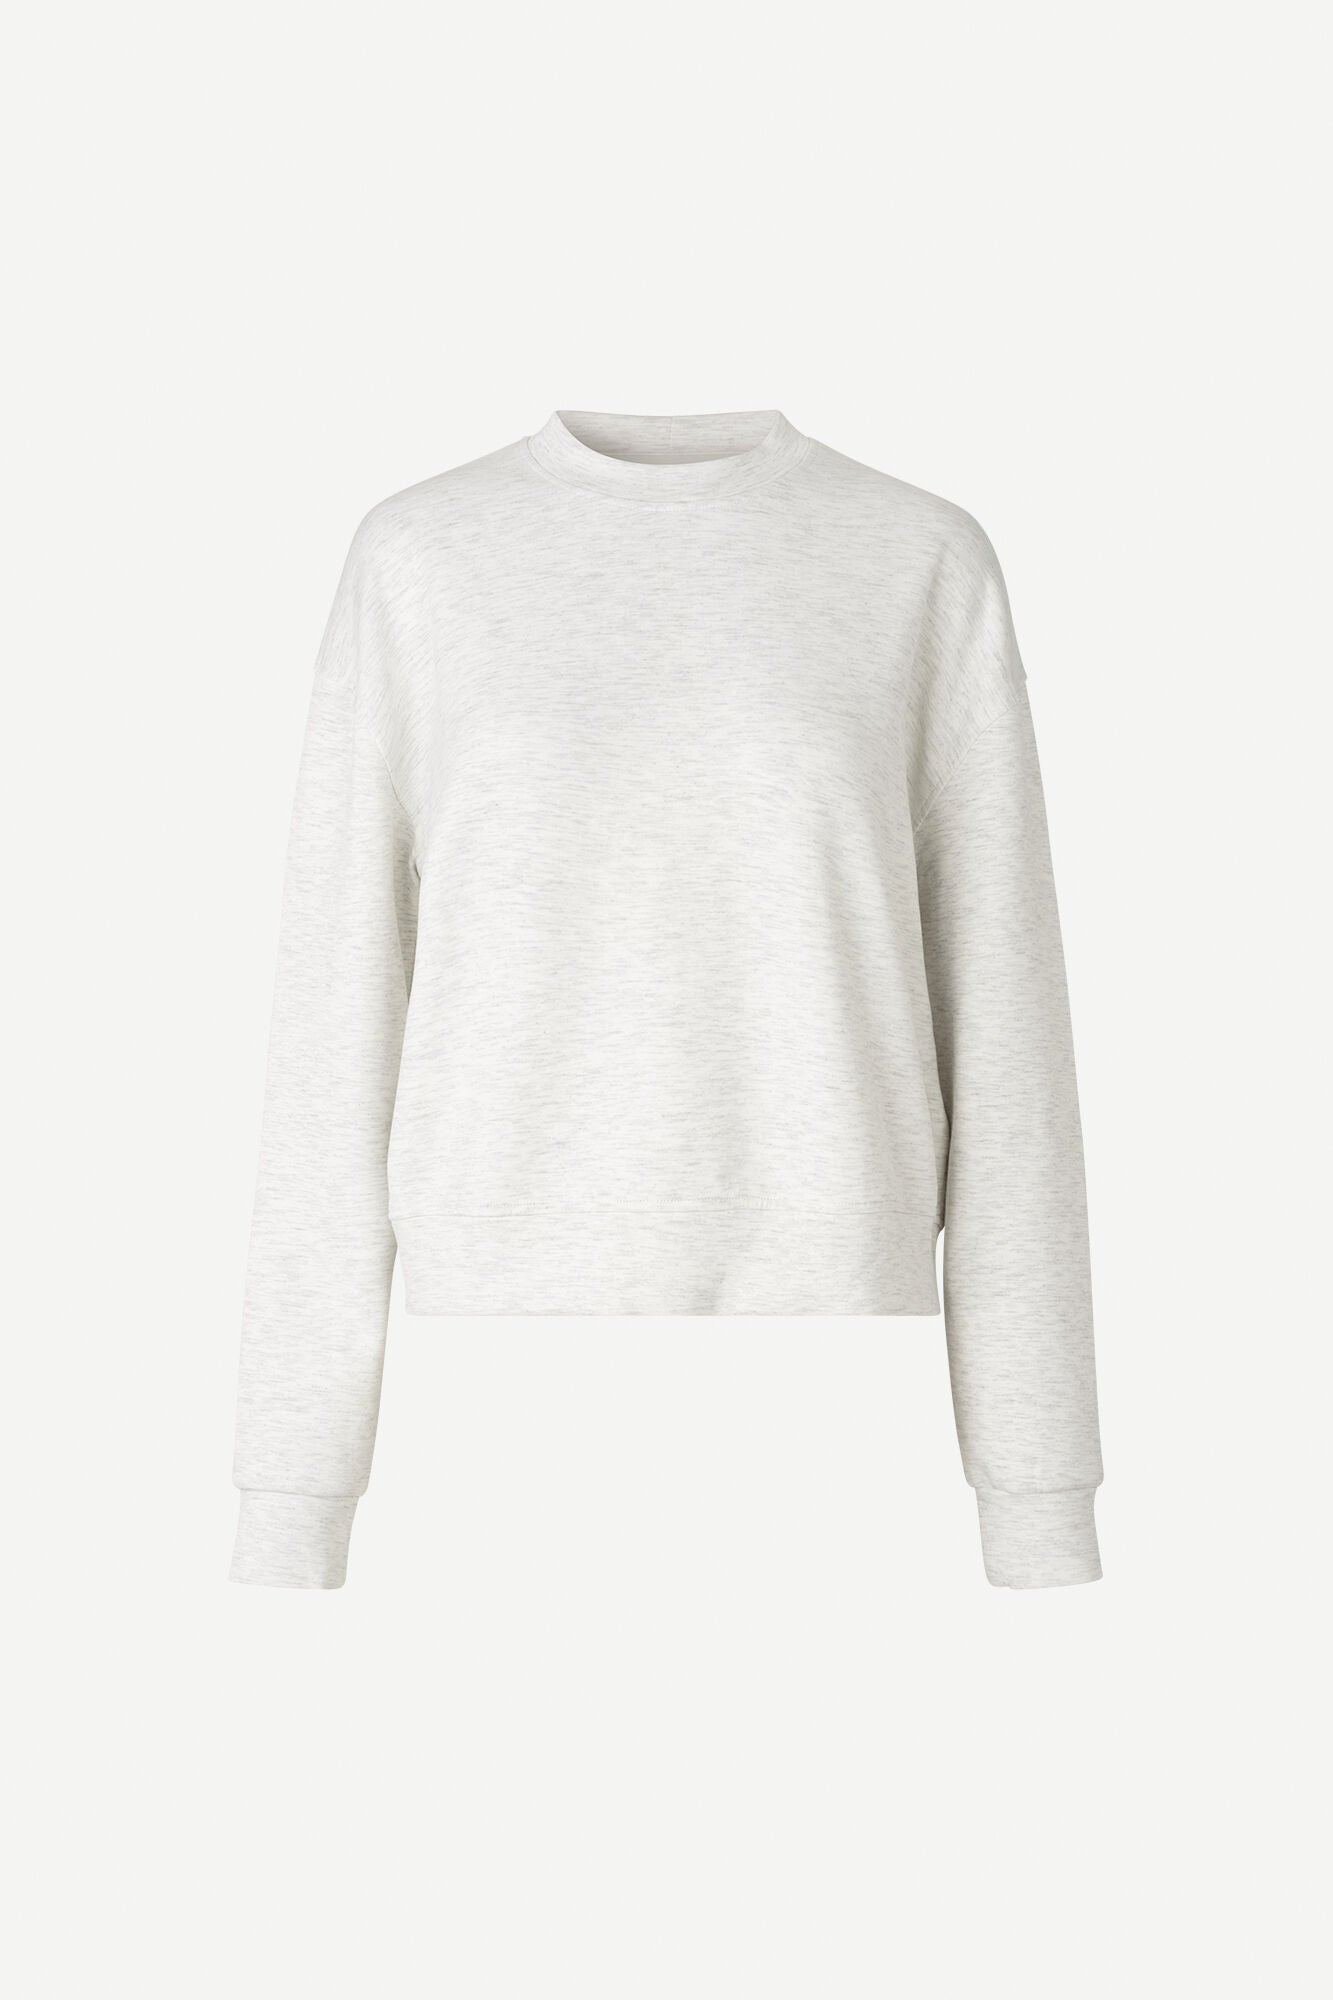 KELSEY CREW NECK IN WHITE GREY